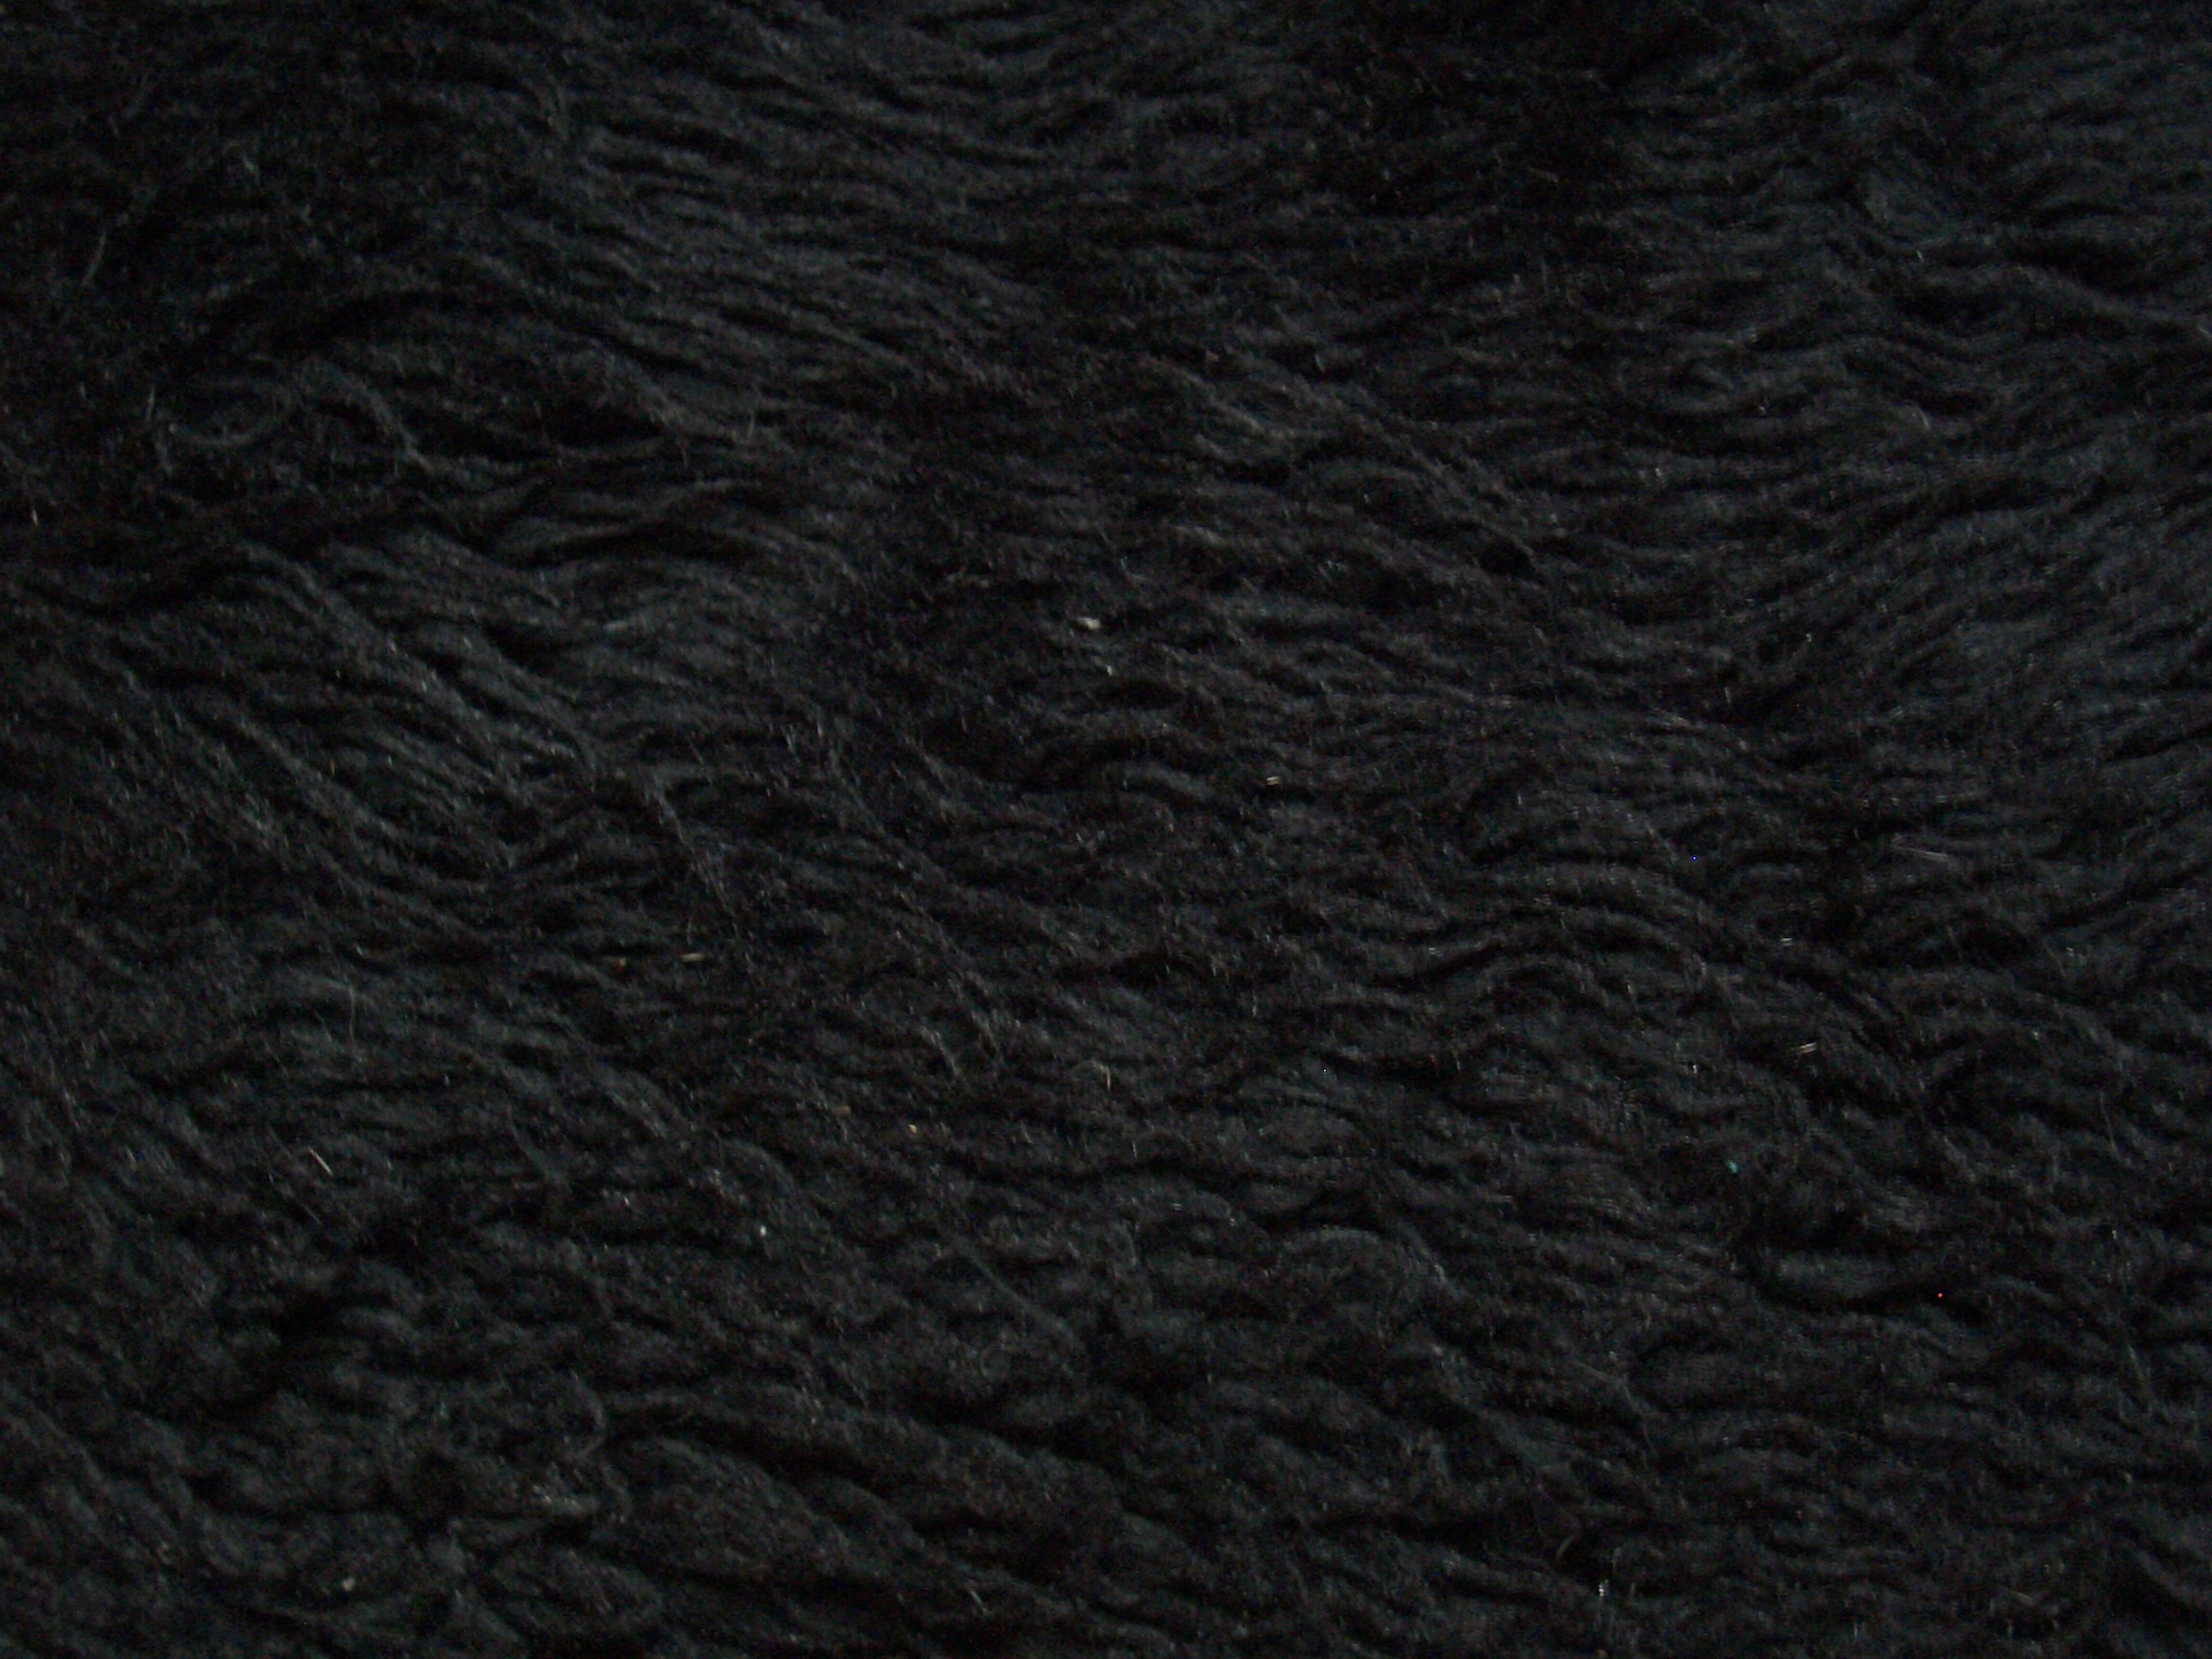 [Picture: Black Nylon Fur]